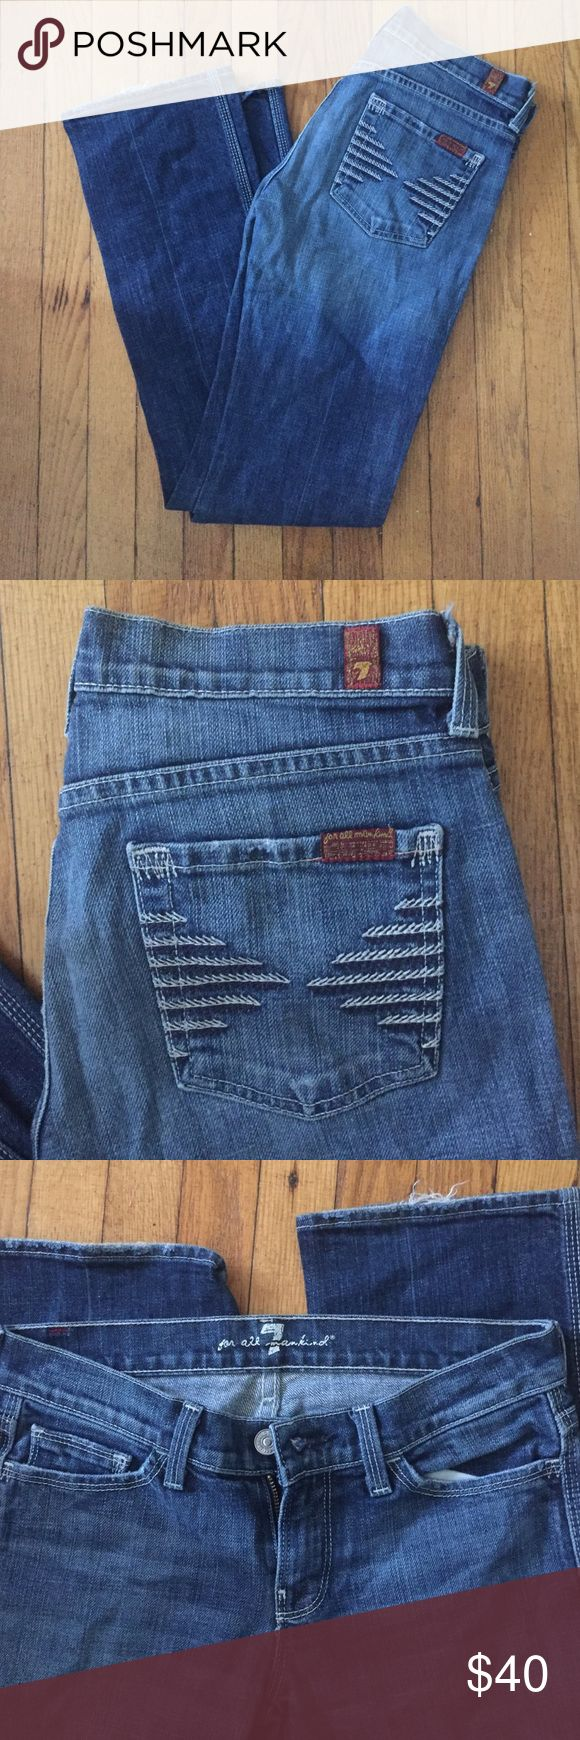 SEVEN JEANS  Cute 7 jeans . Size 26 . These are slim fit with a slight flare Seven7 Jeans